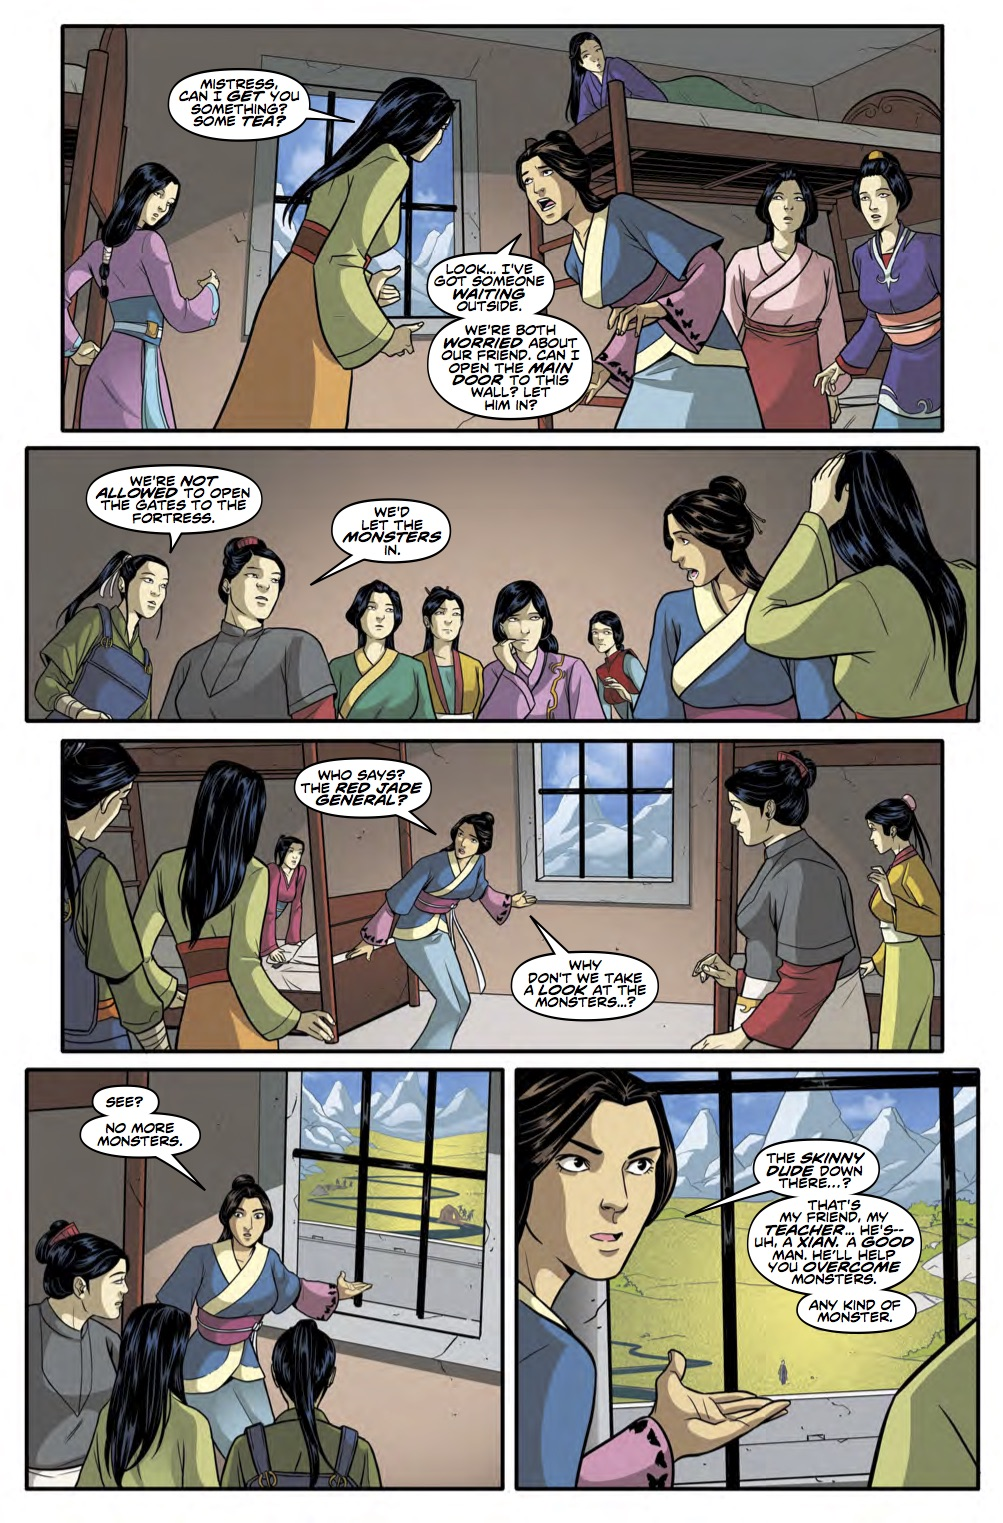 THE TENTH DOCTOR YEAR THREE #4 Page 2 (Credit: Titan)